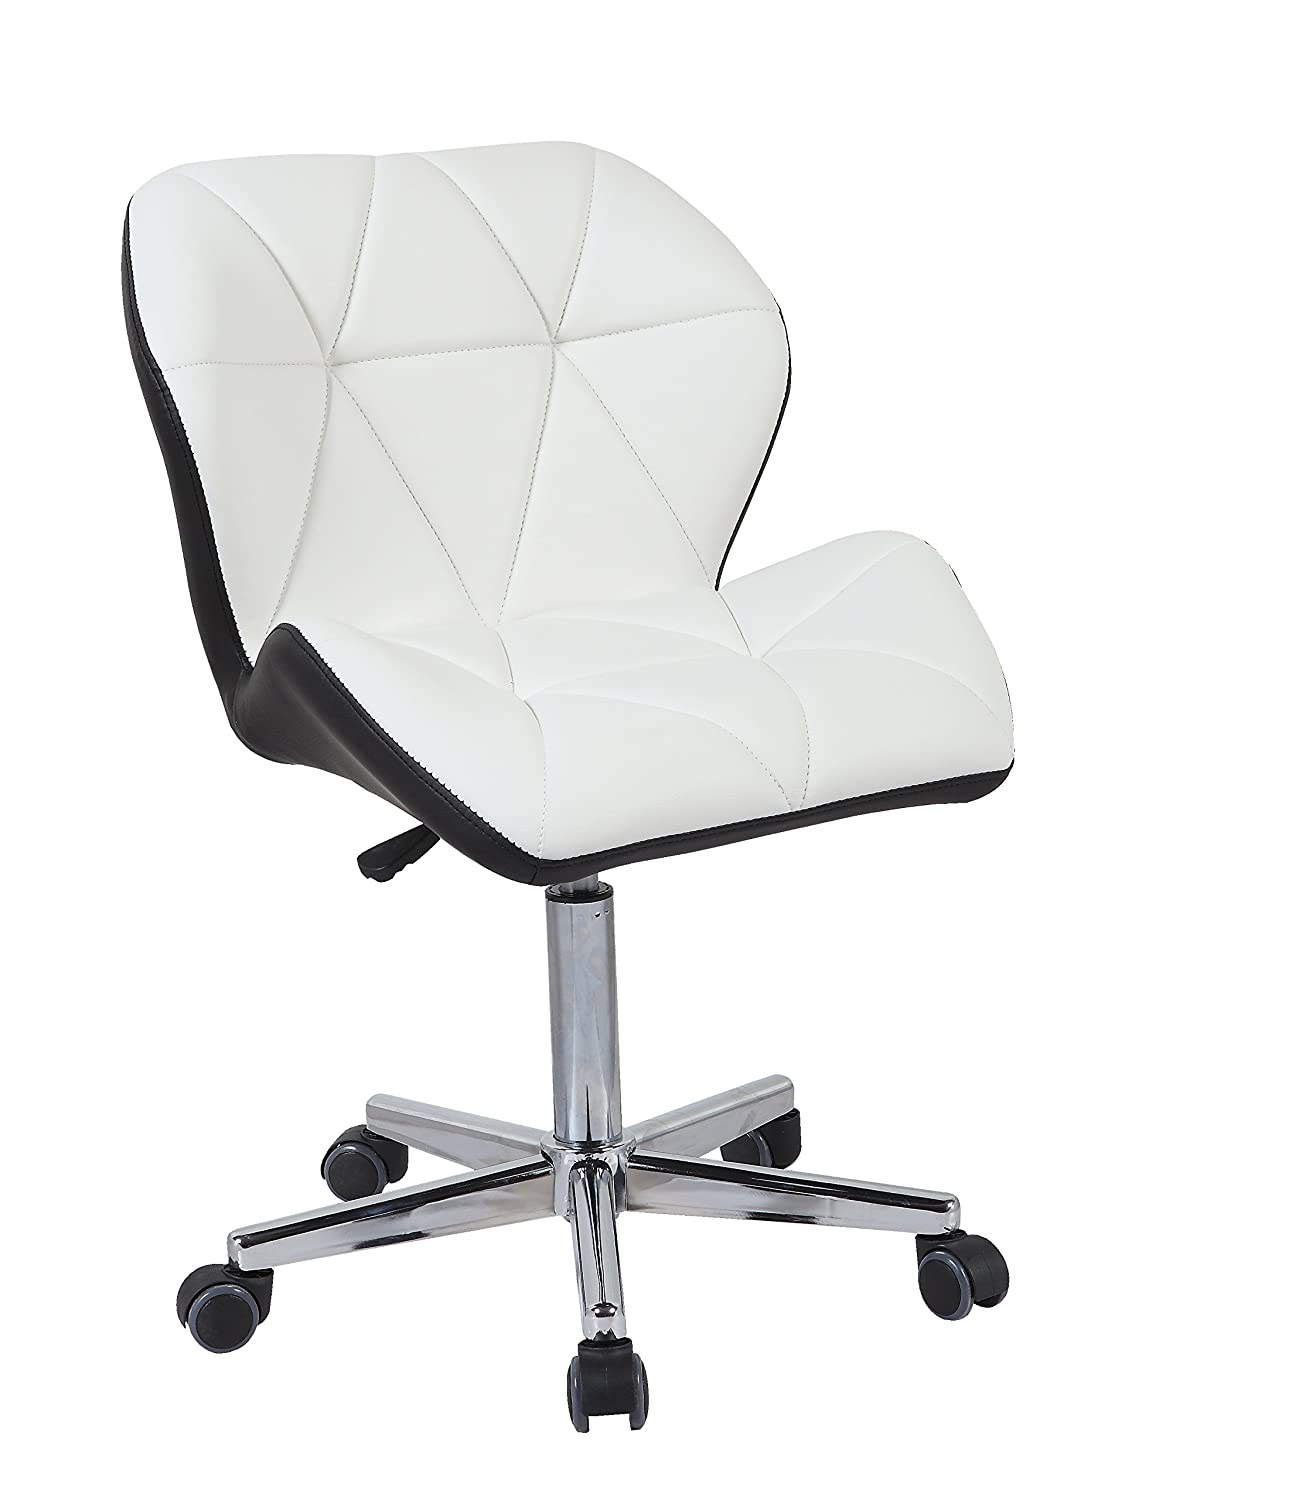 HNNHOME Modern Uranus Padded Swivel Leather Computer Desk Office Chair  Mixed Color (WHITE/BLACK): Amazon.co.uk: Kitchen U0026 Home